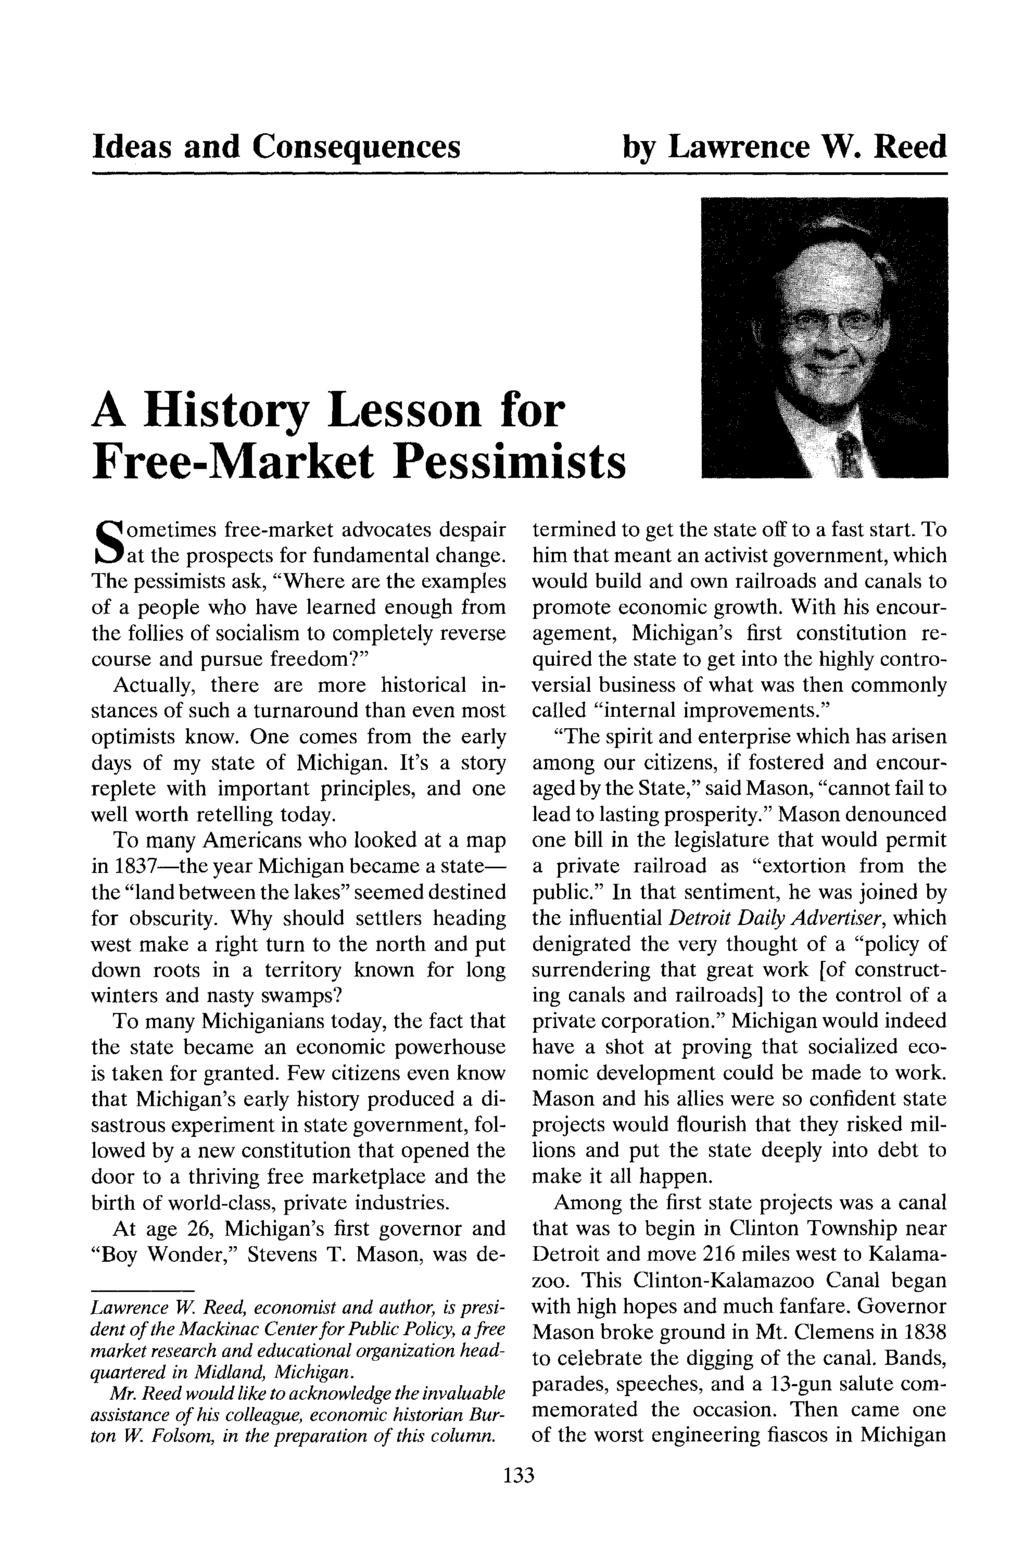 Ideas and Consequences by Lawrence W. Reed A History Lesson for Free-Market Pessimists Sometimes free-market advocates despair at the prospects for fundamental change.